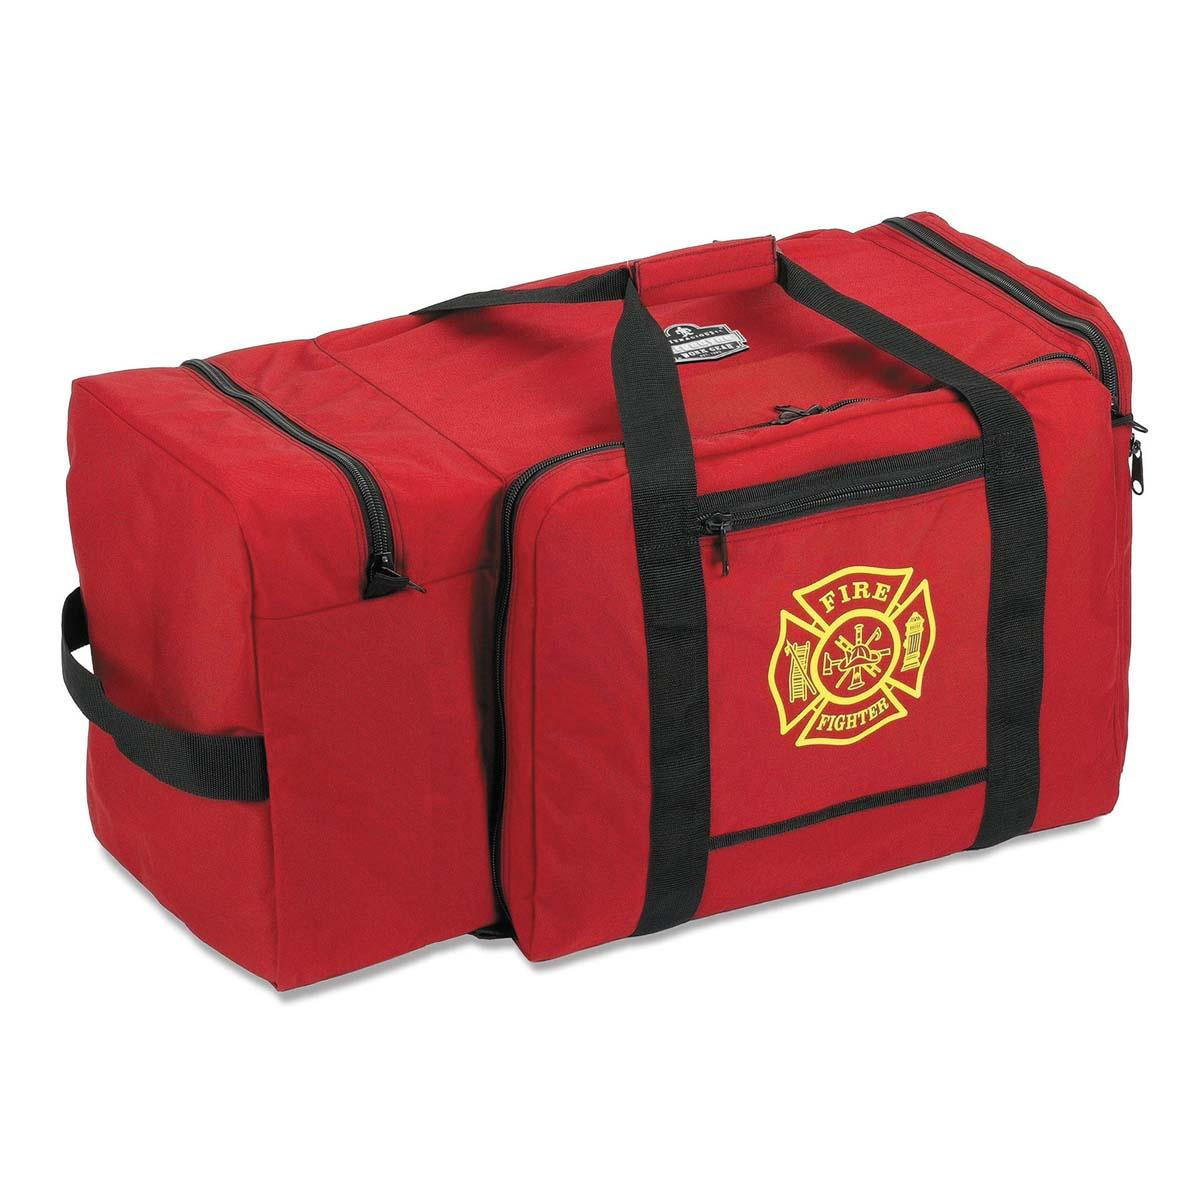 GB5005P  Red Large Fire & Rescue Gear Bag - Polyester